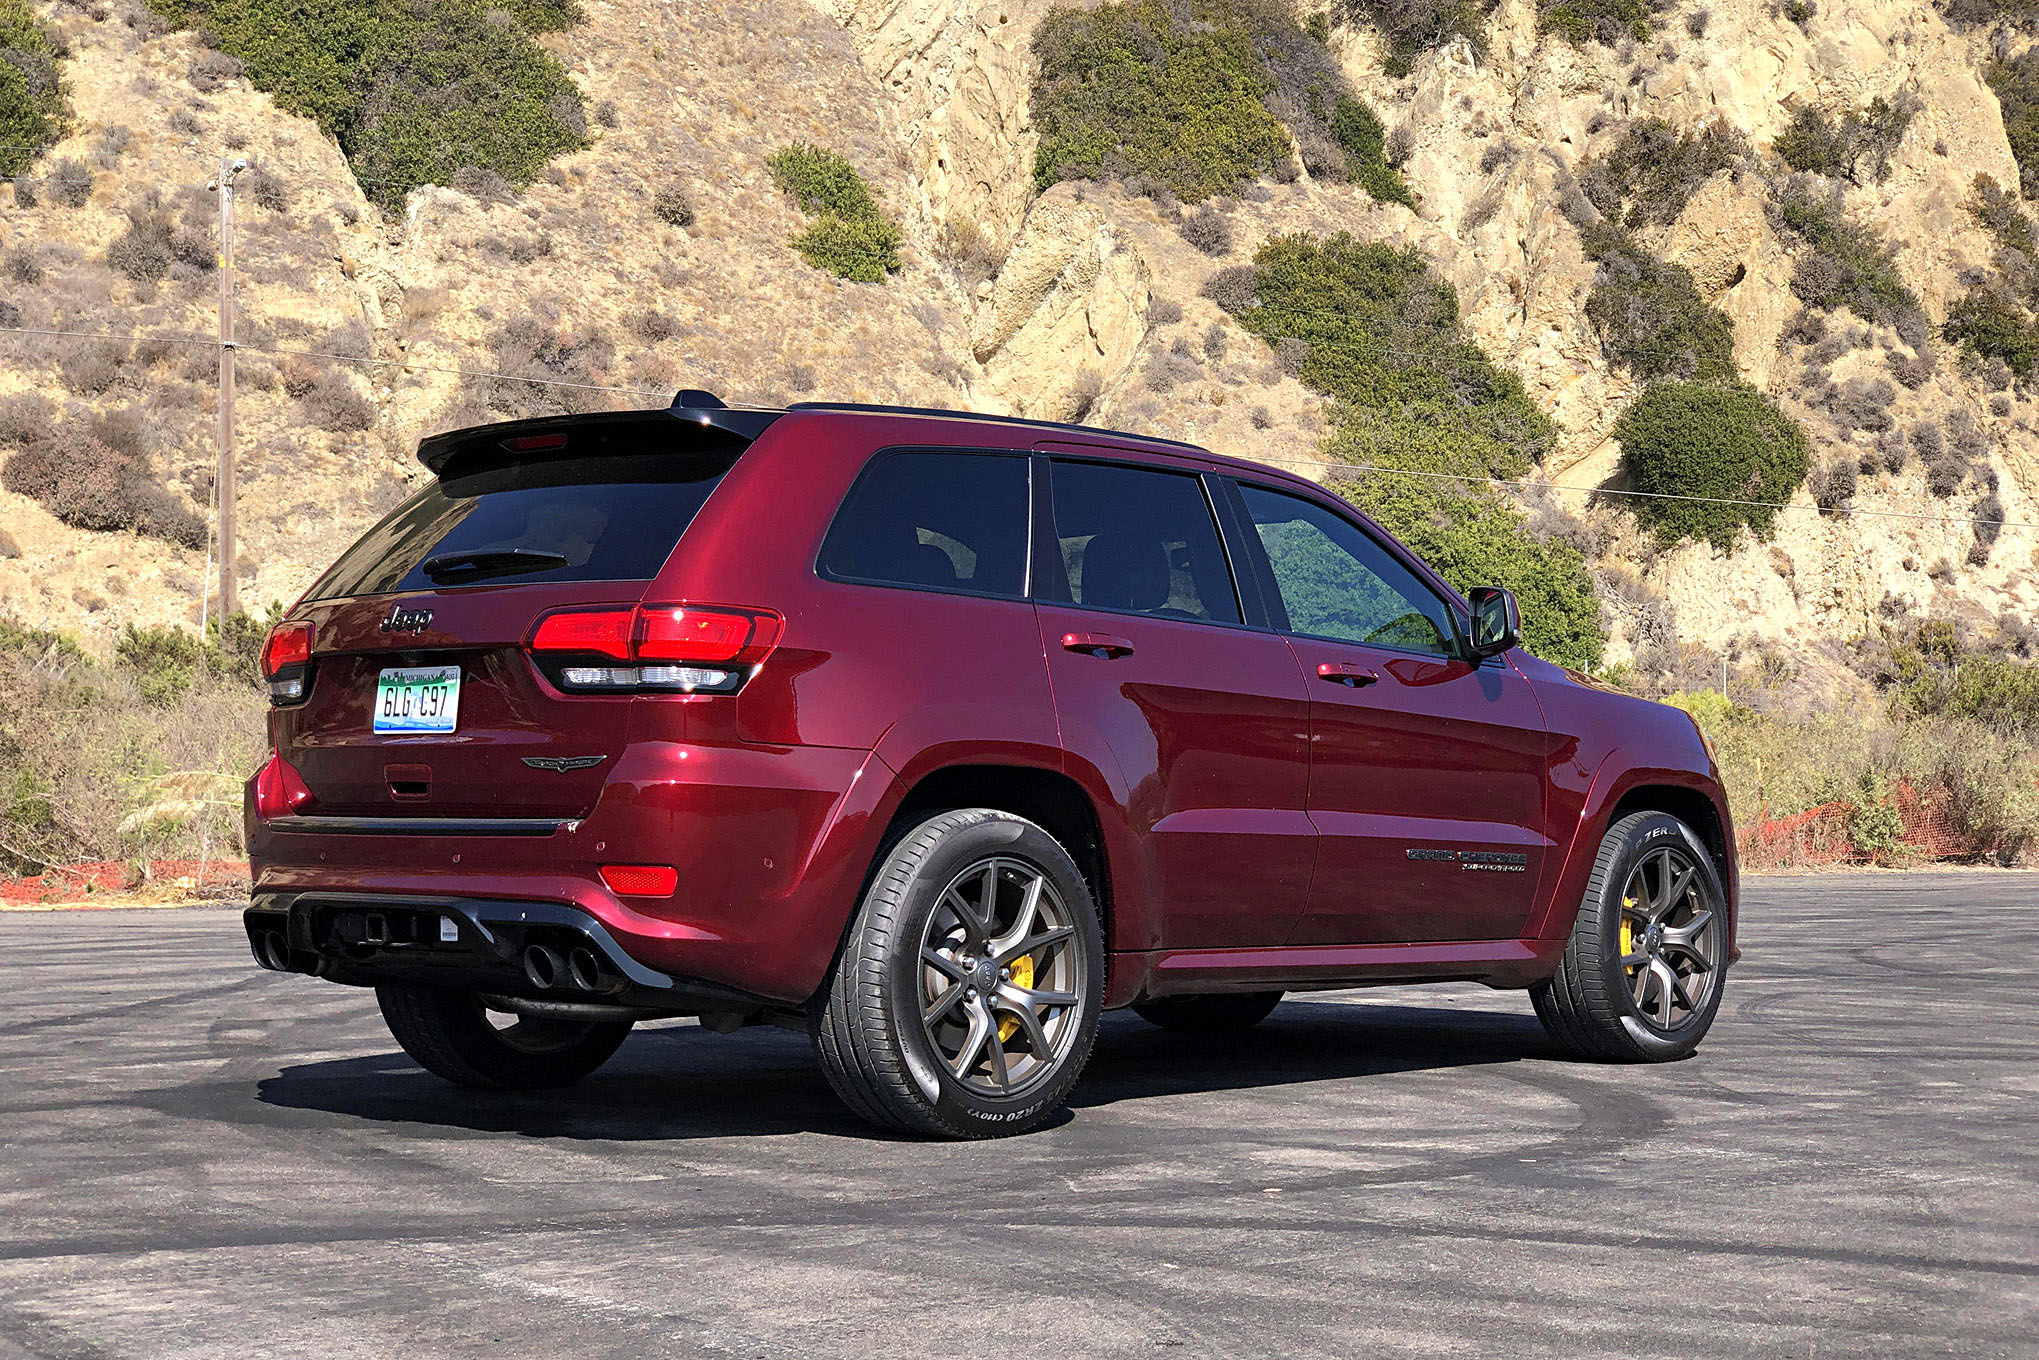 Towing An Airstream Basecamp With 2020 Jeep Grand Cherokee Trackhawk